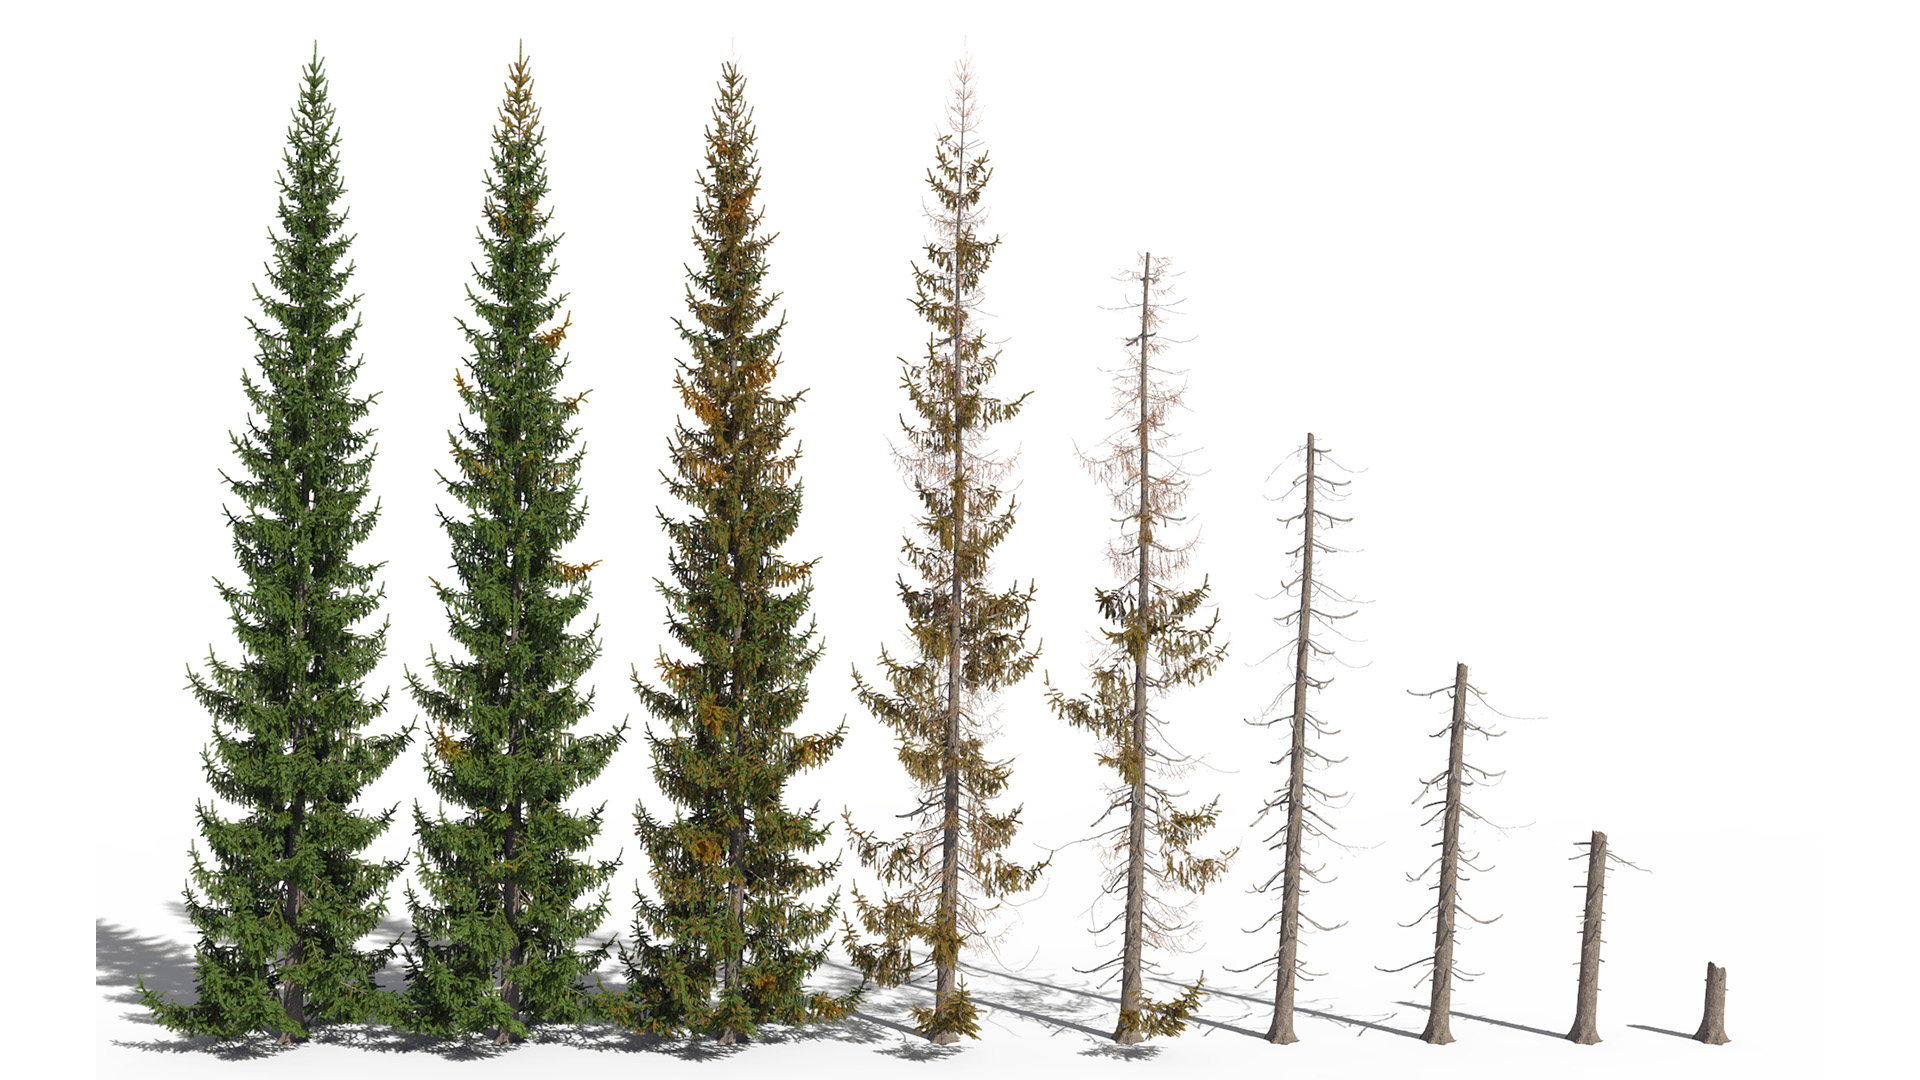 3D model of the Norway spruce Picea abies health variations